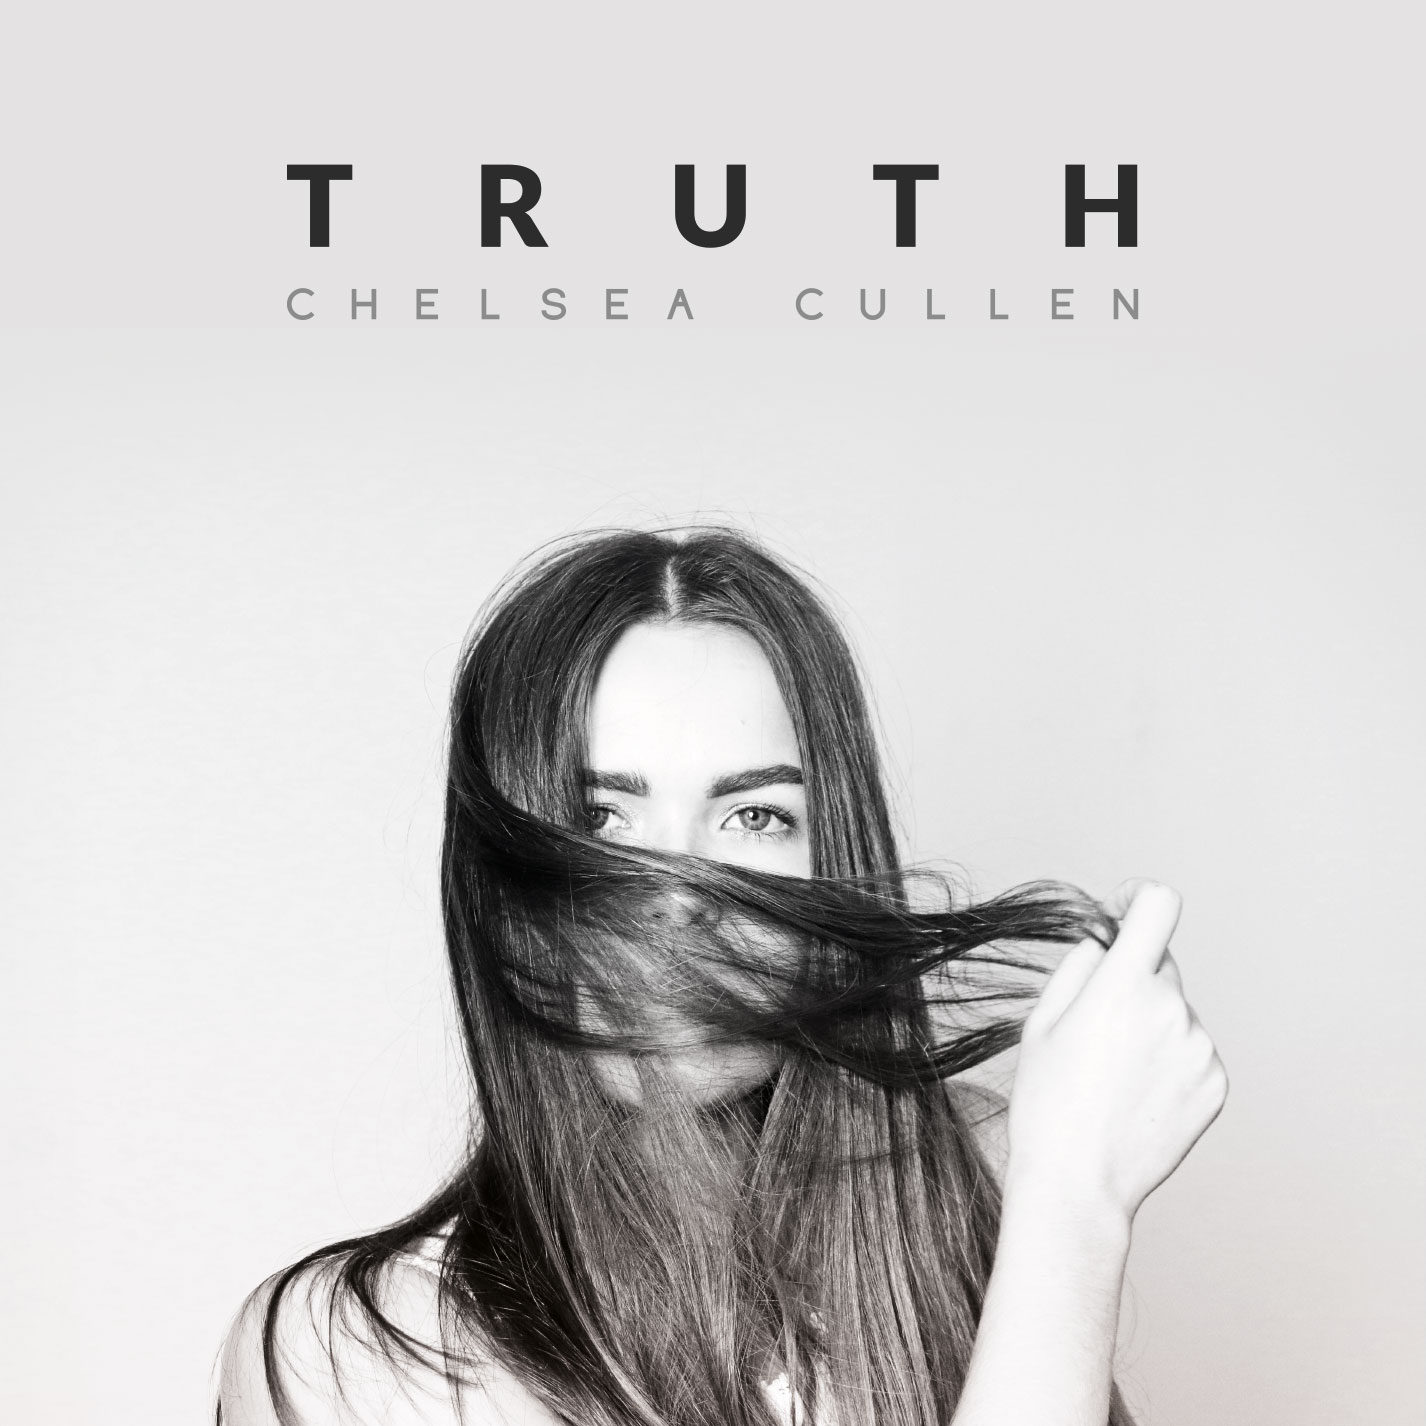 Chelsea-Cullen-truth-cover-km